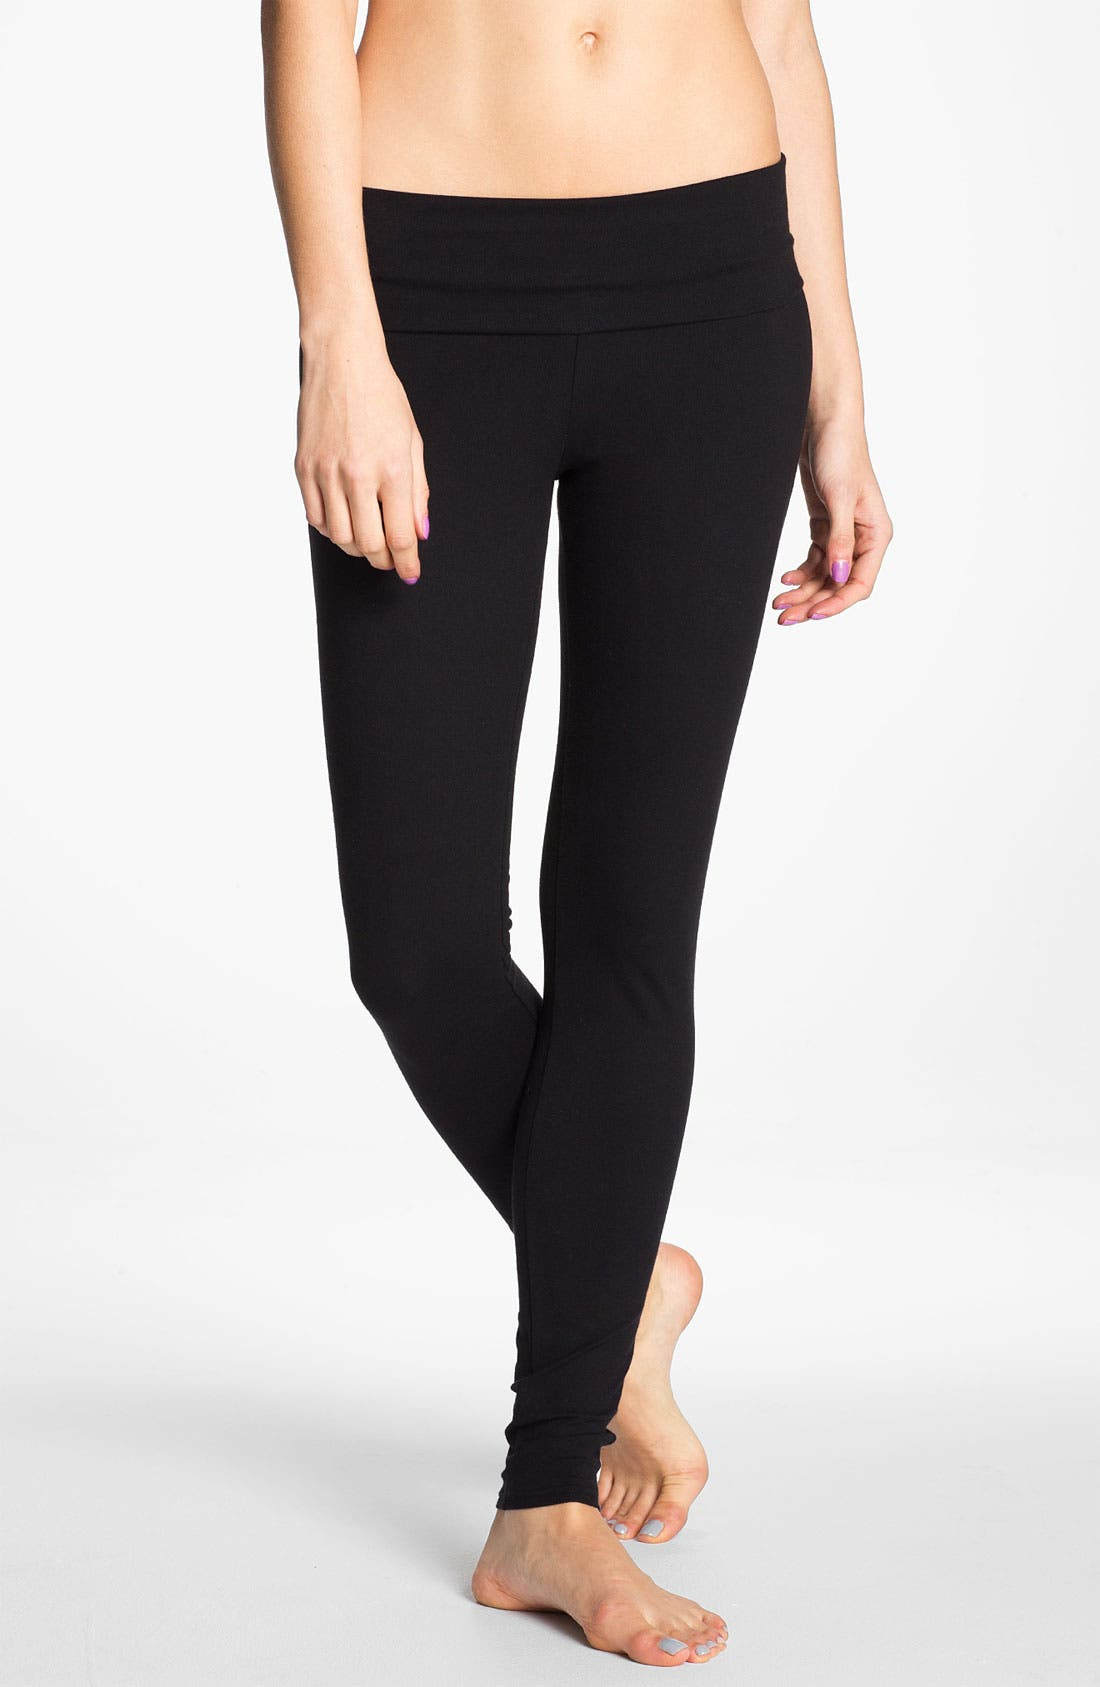 Alternate Image 1 Selected - BP. Undercover Foldover Leggings (Juniors)